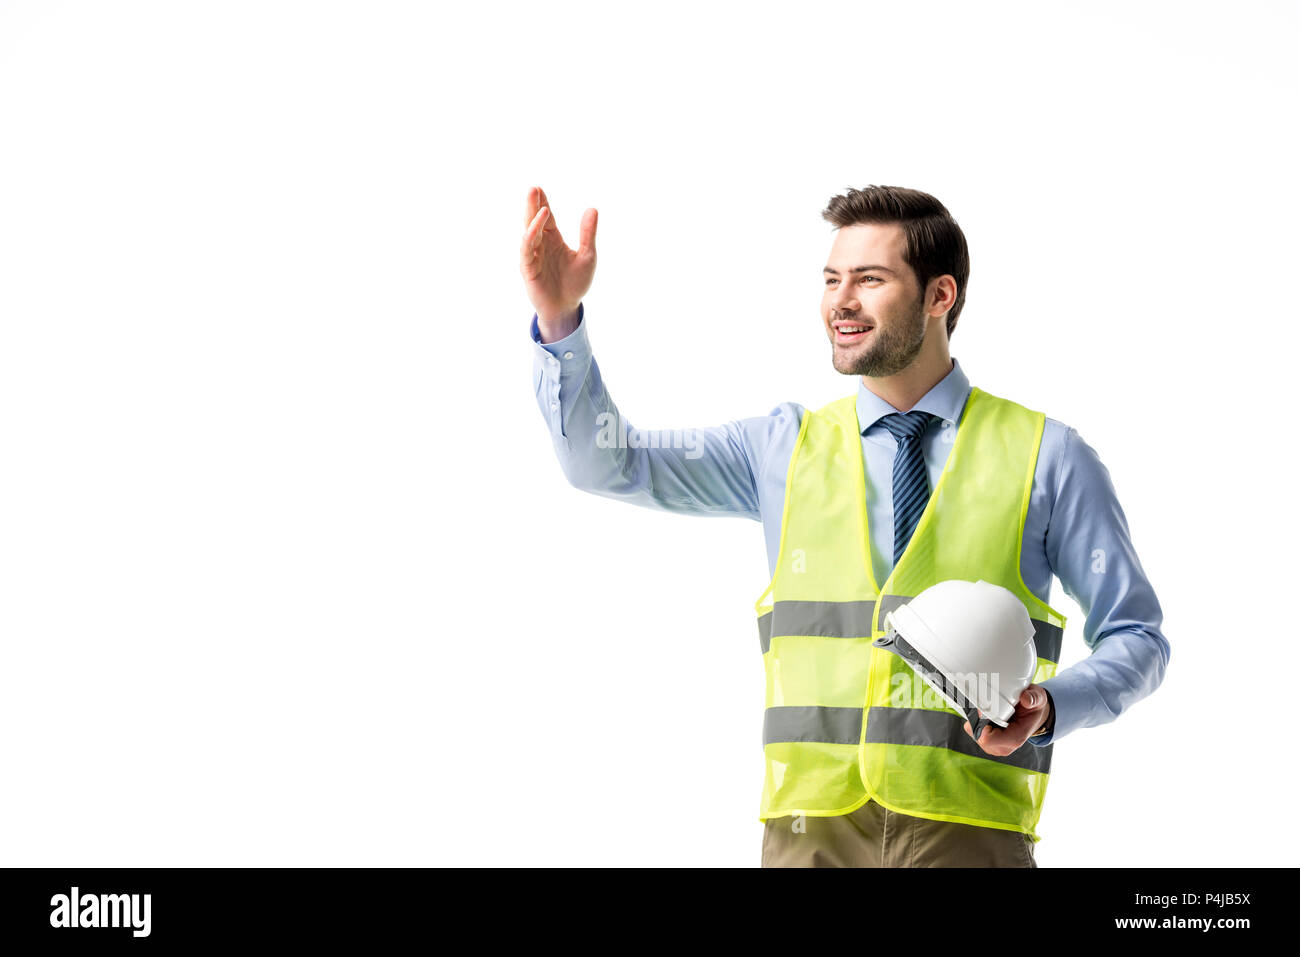 Architect in reflective vest holding hardhat isolated on white - Stock Image